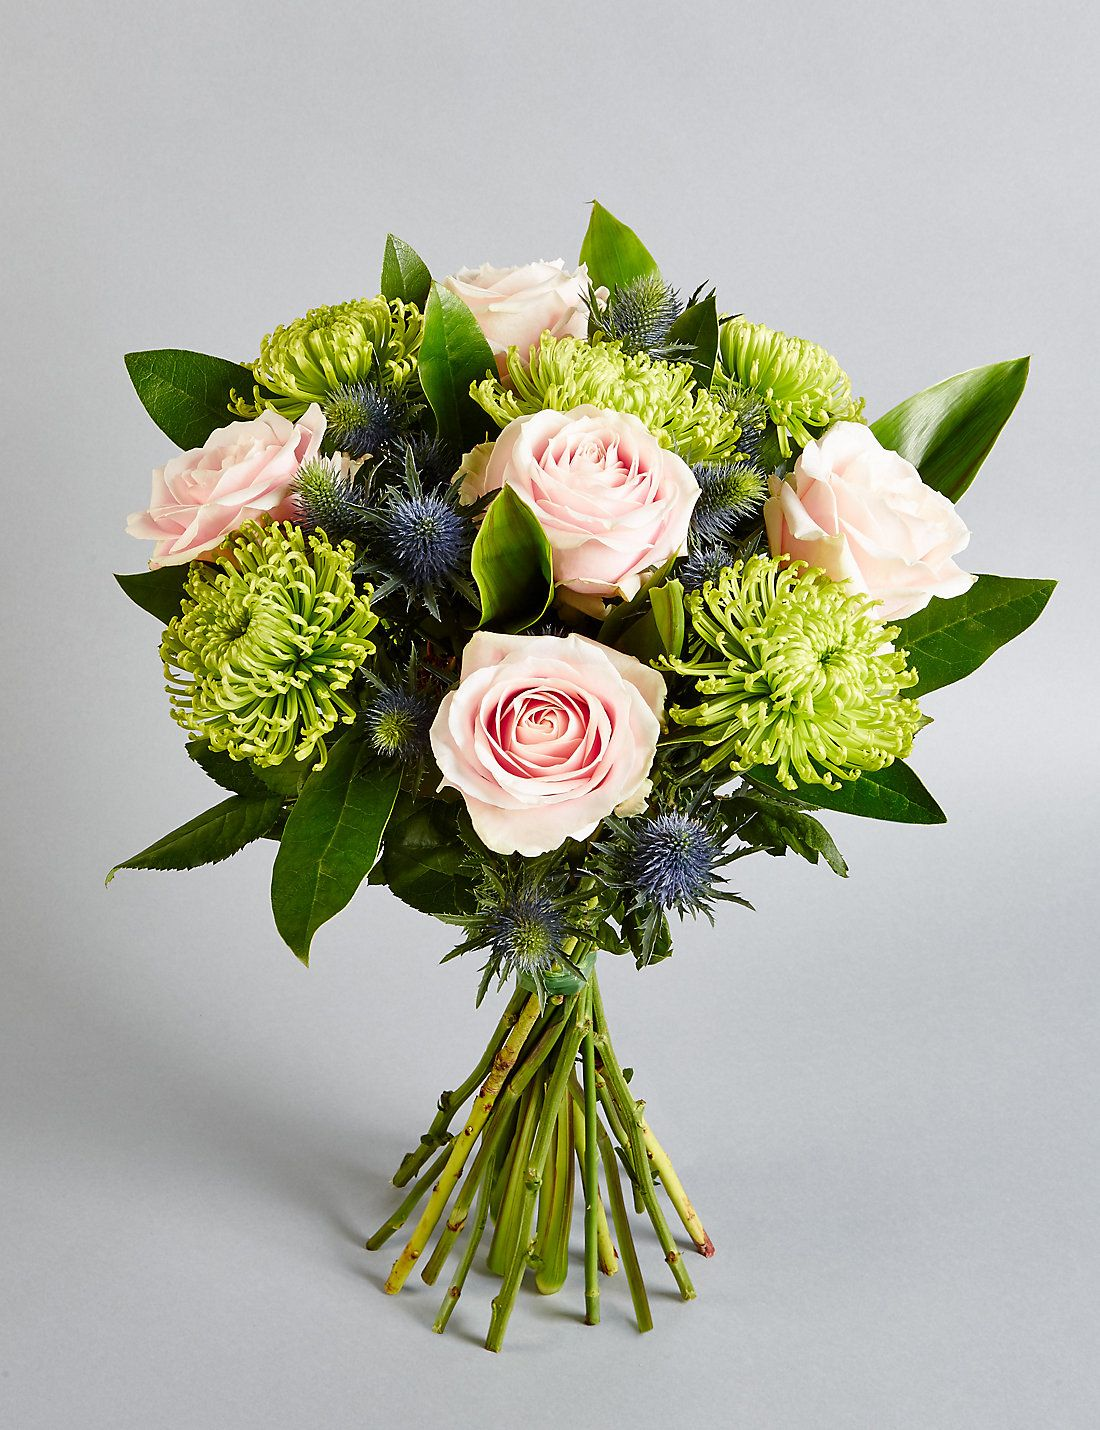 Pin by C. B. on Flowers Flower bouquet delivery